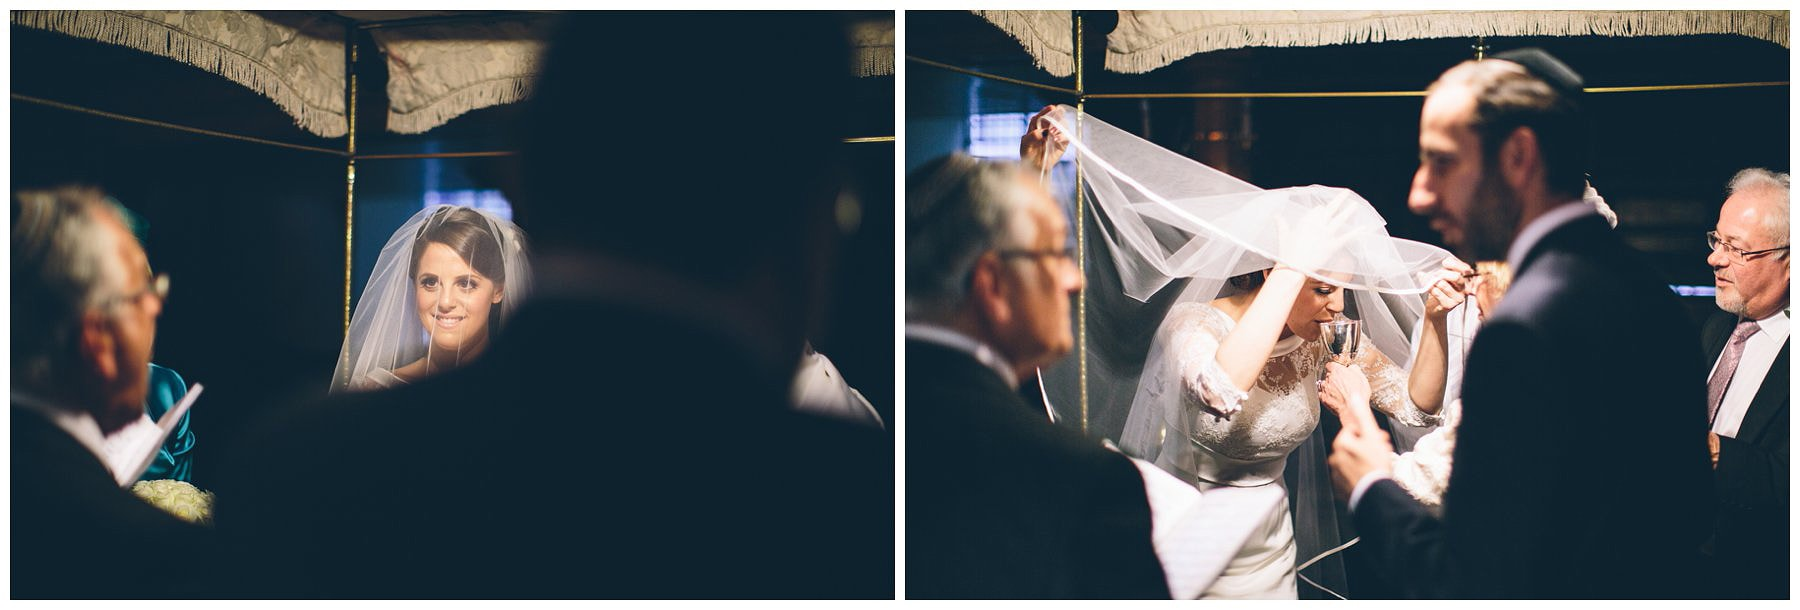 Bevis_Marks_Synagogue_Wedding_Photography_0061